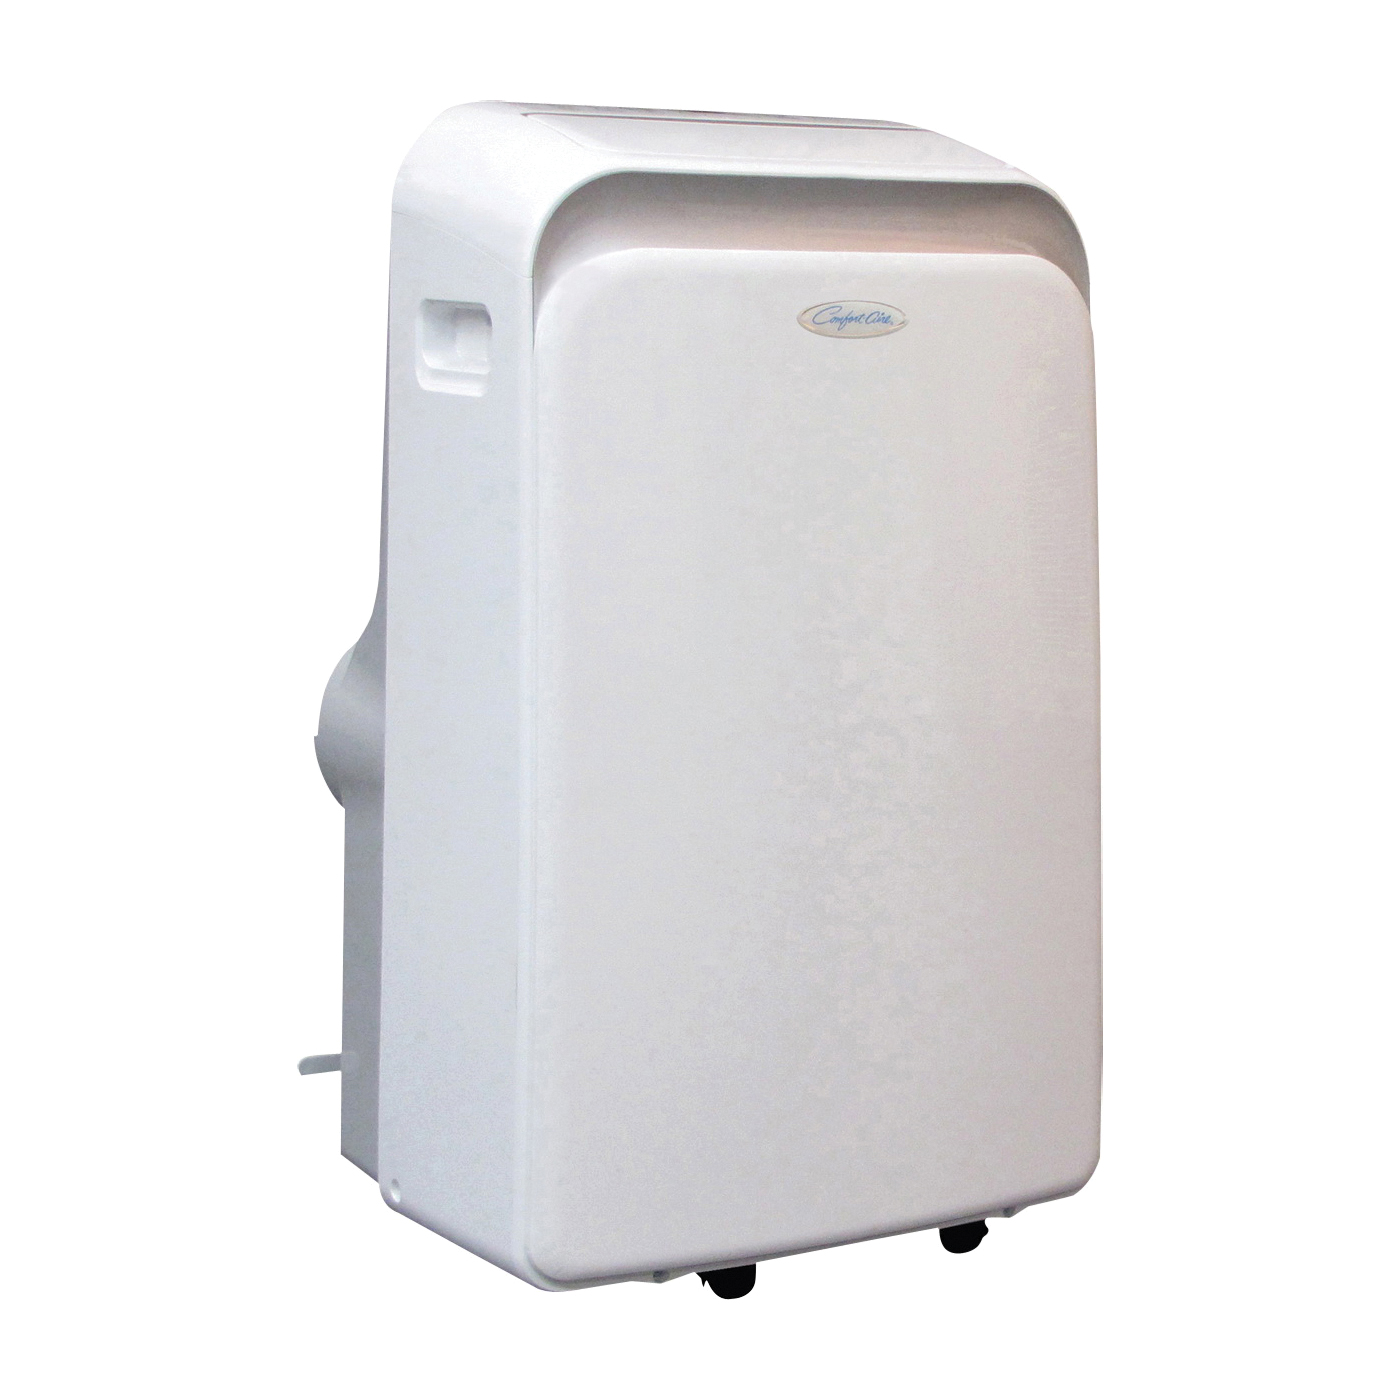 Picture of Comfort-Aire PSH-141A Room Air Conditioner, 115 V, 60 Hz, 14,000 Btu/hr Cooling, 11,000 Btu/hr Heating, 3-Speed